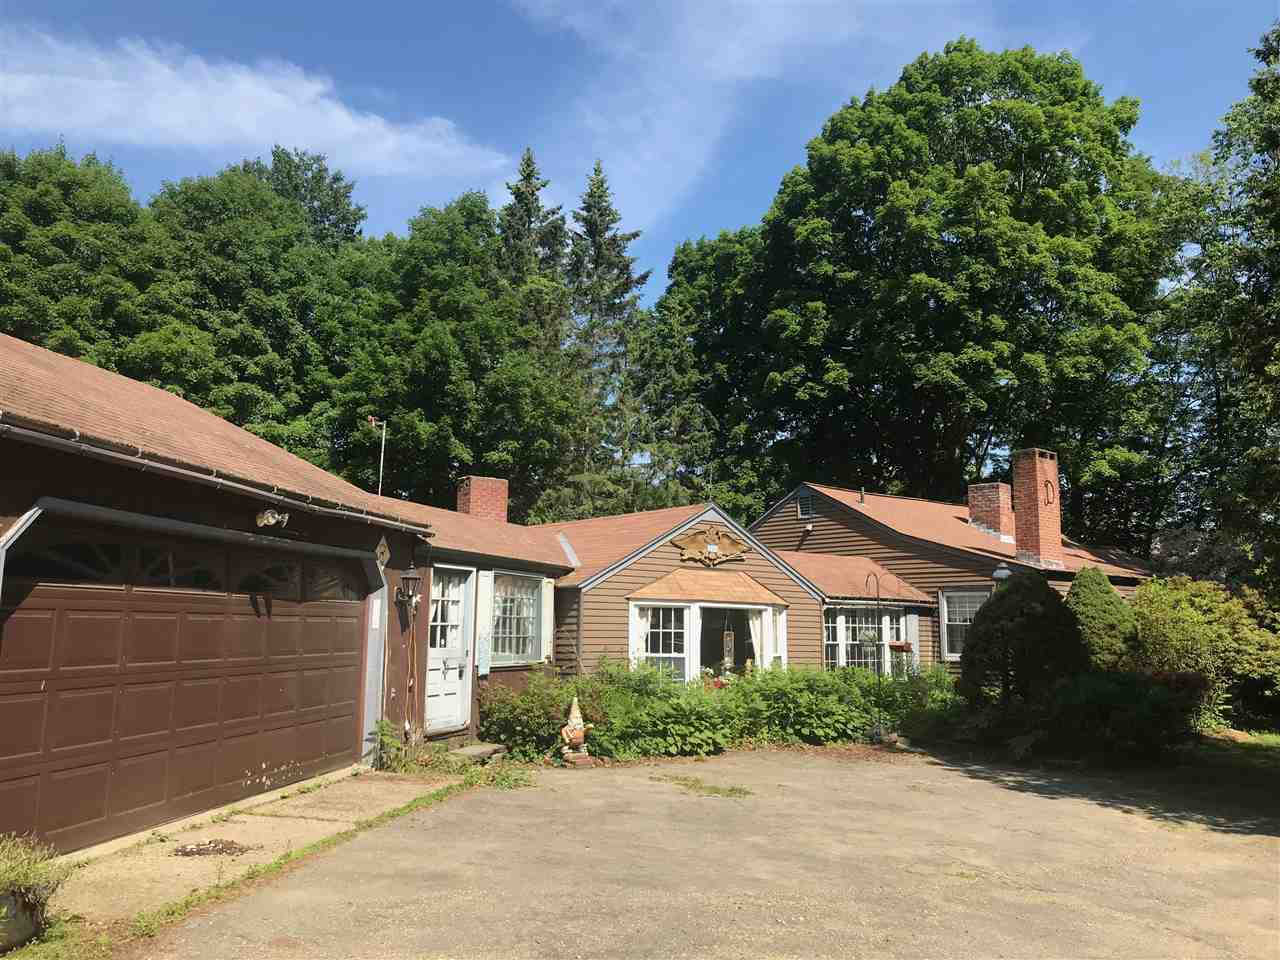 MLS 4760154: 56 main Street-Unit 18, Alstead NH